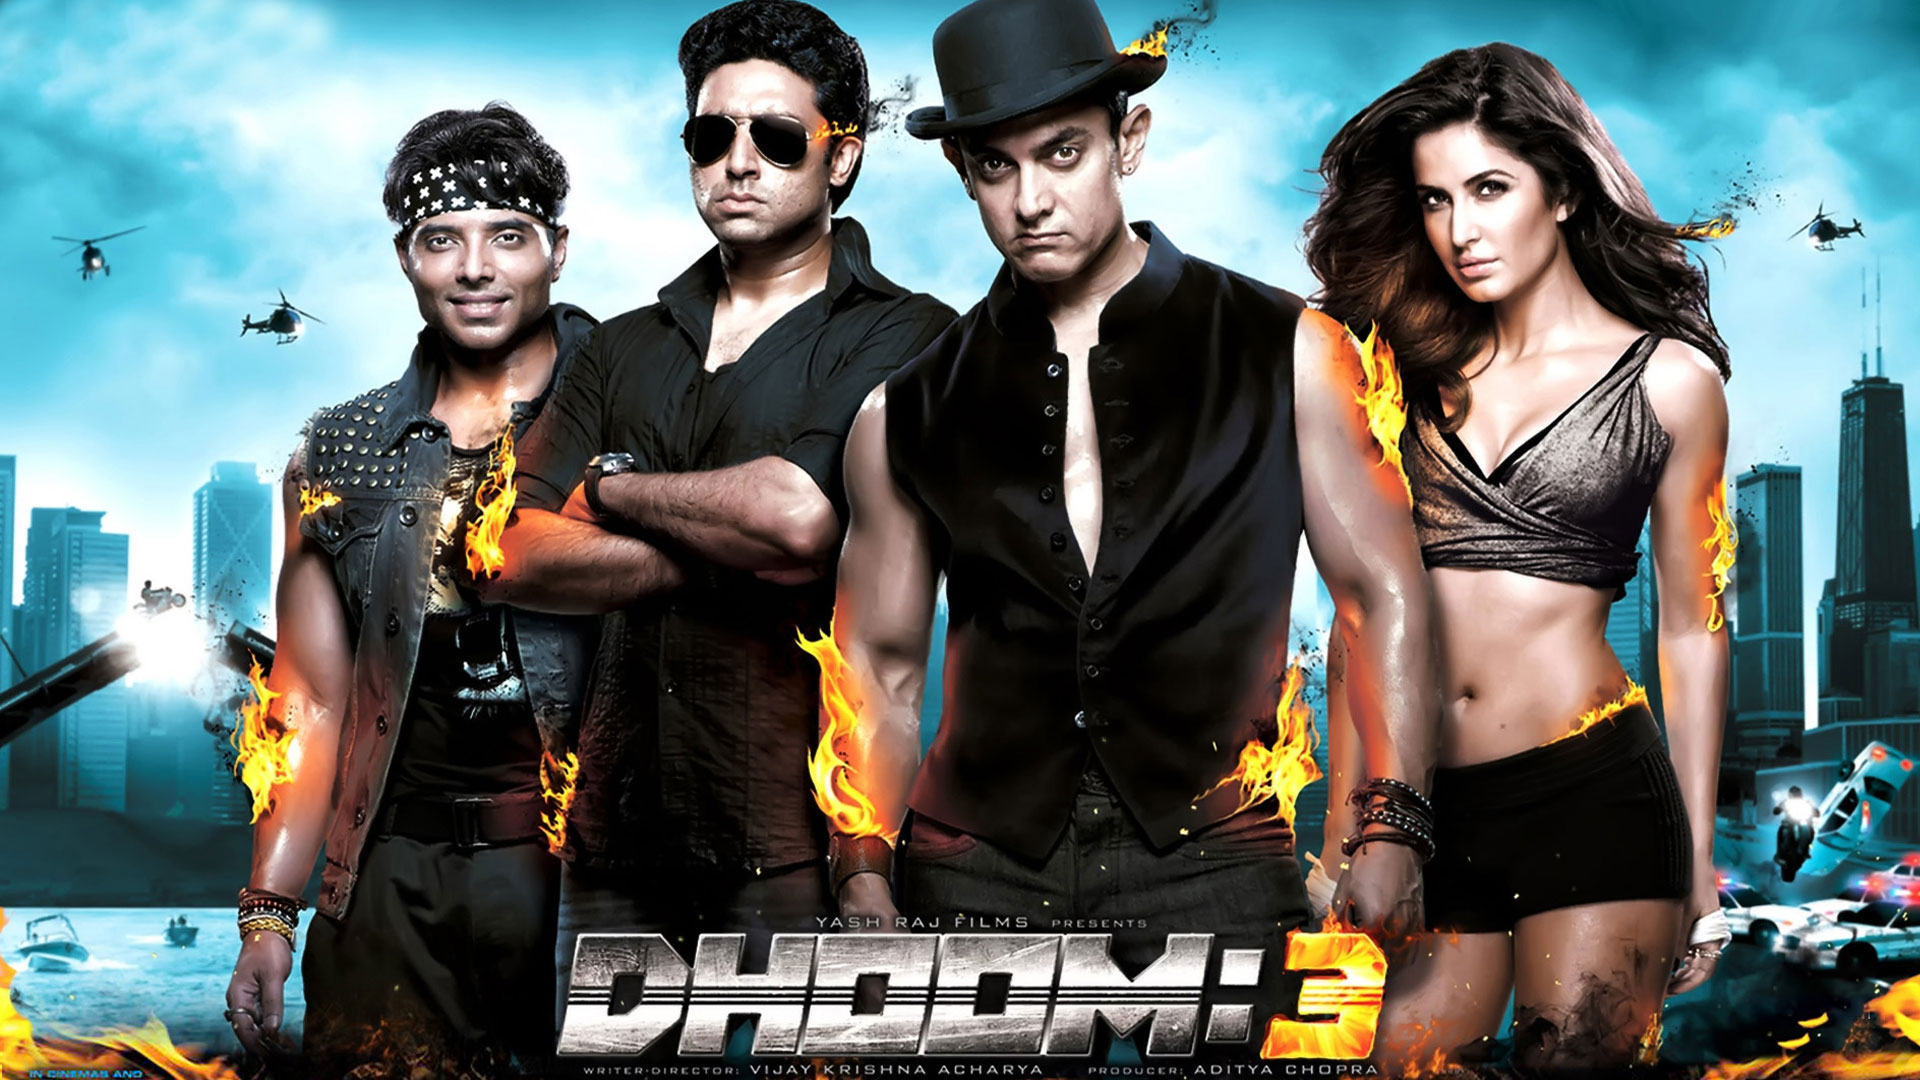 Wallpaper 1of 5 | Dhoom 3 Movie wallpapers | Dhoom 3 Wallpapers | Dhoom 3 Movie wallpapers